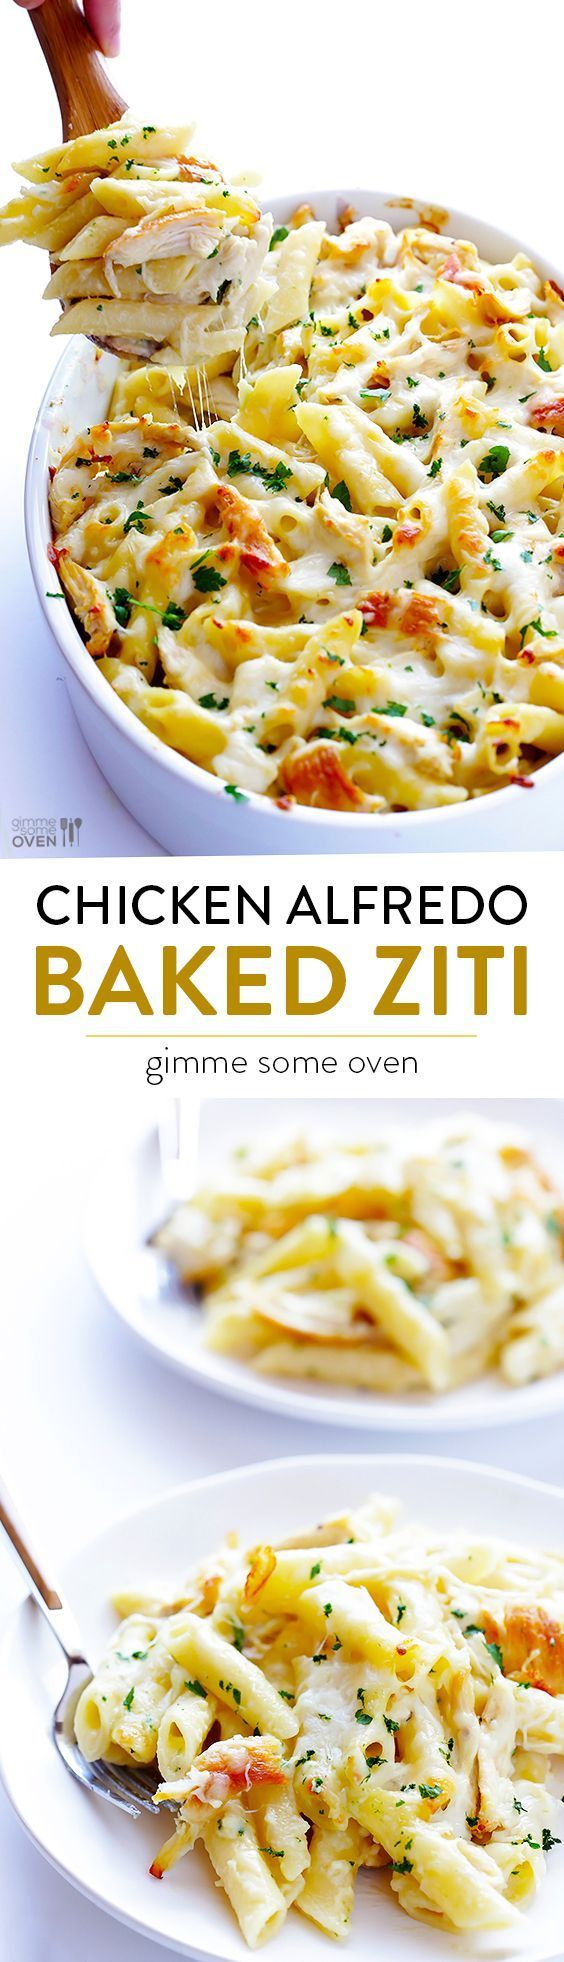 chicken sauces simple baked ziti recipes ziti recipe the sauce my ...